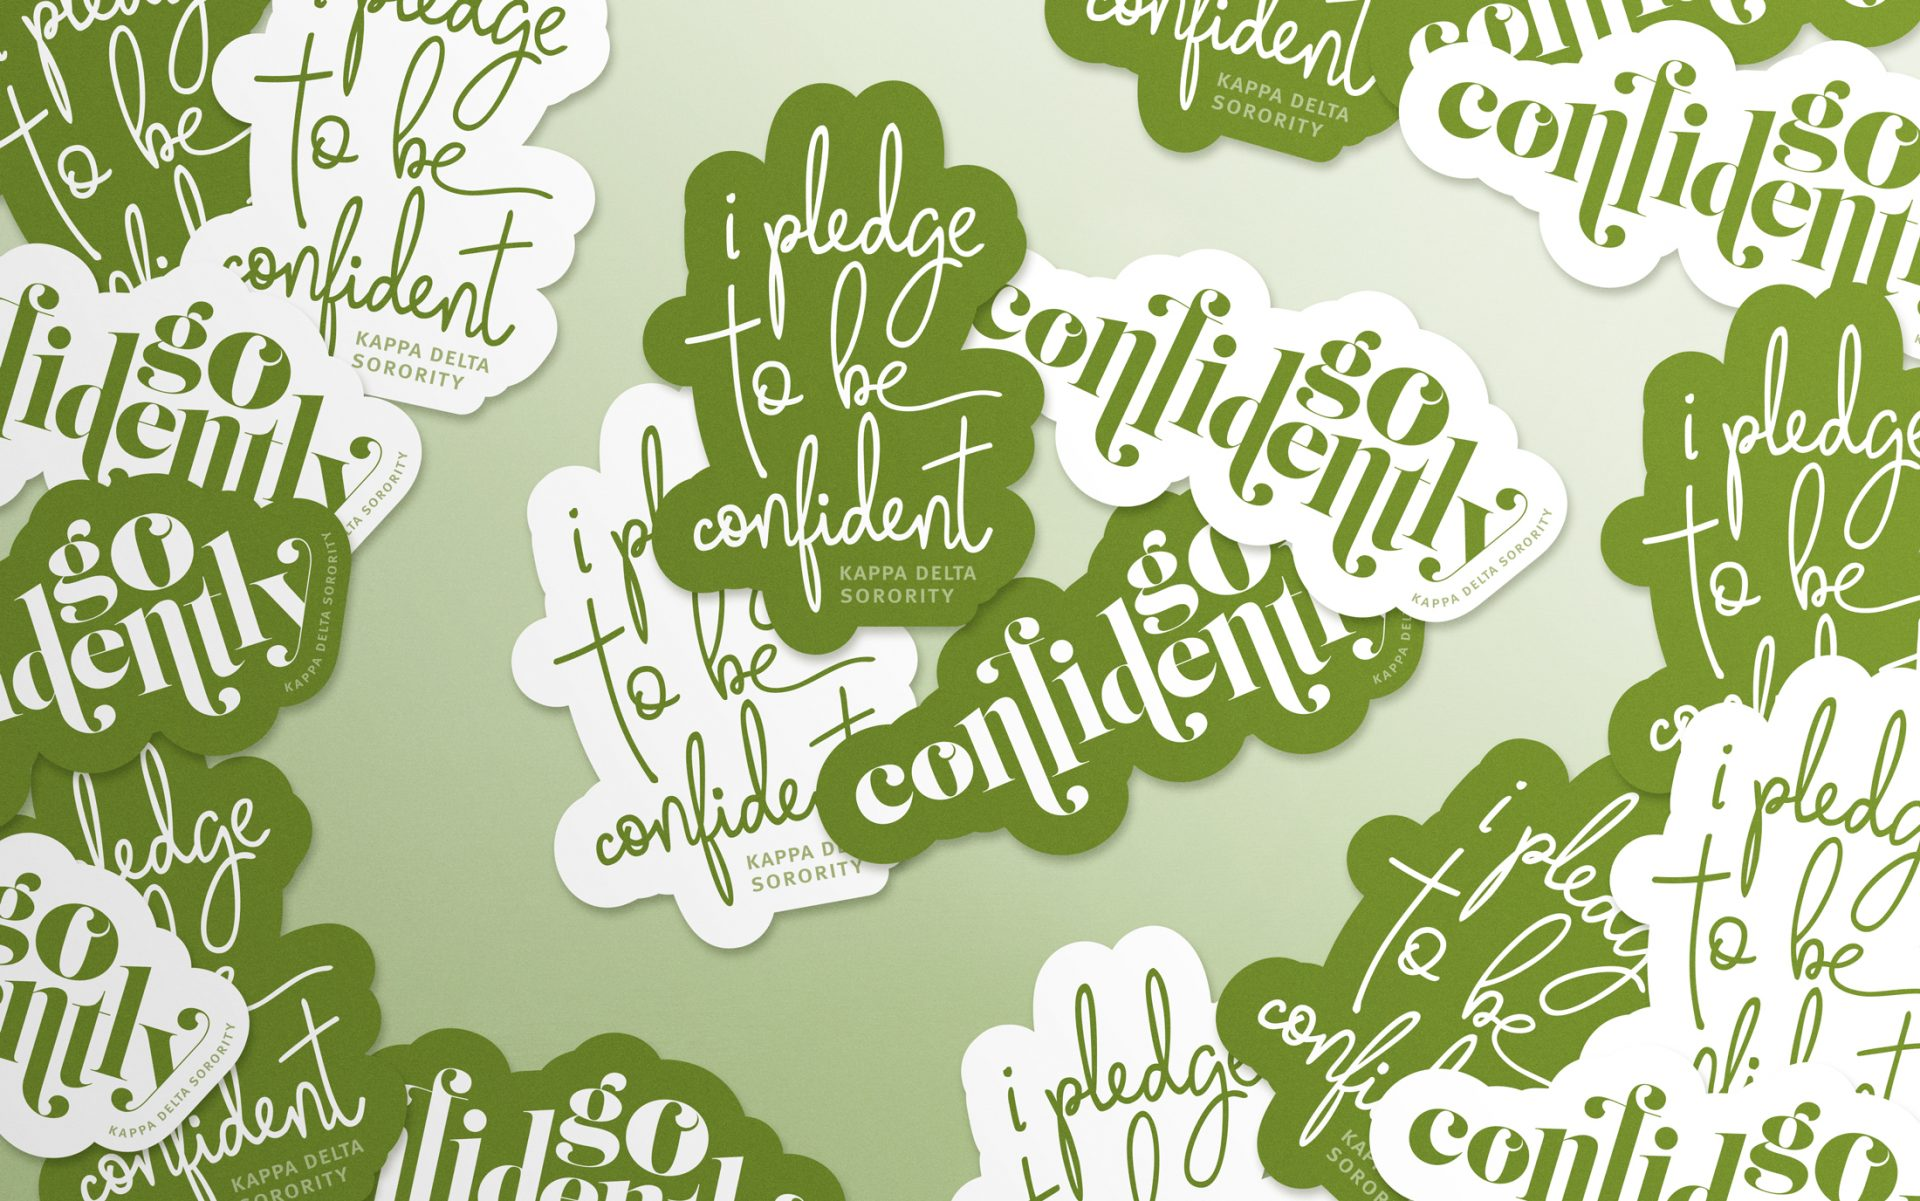 i pledge to be confident go confidently die cut sticker designs